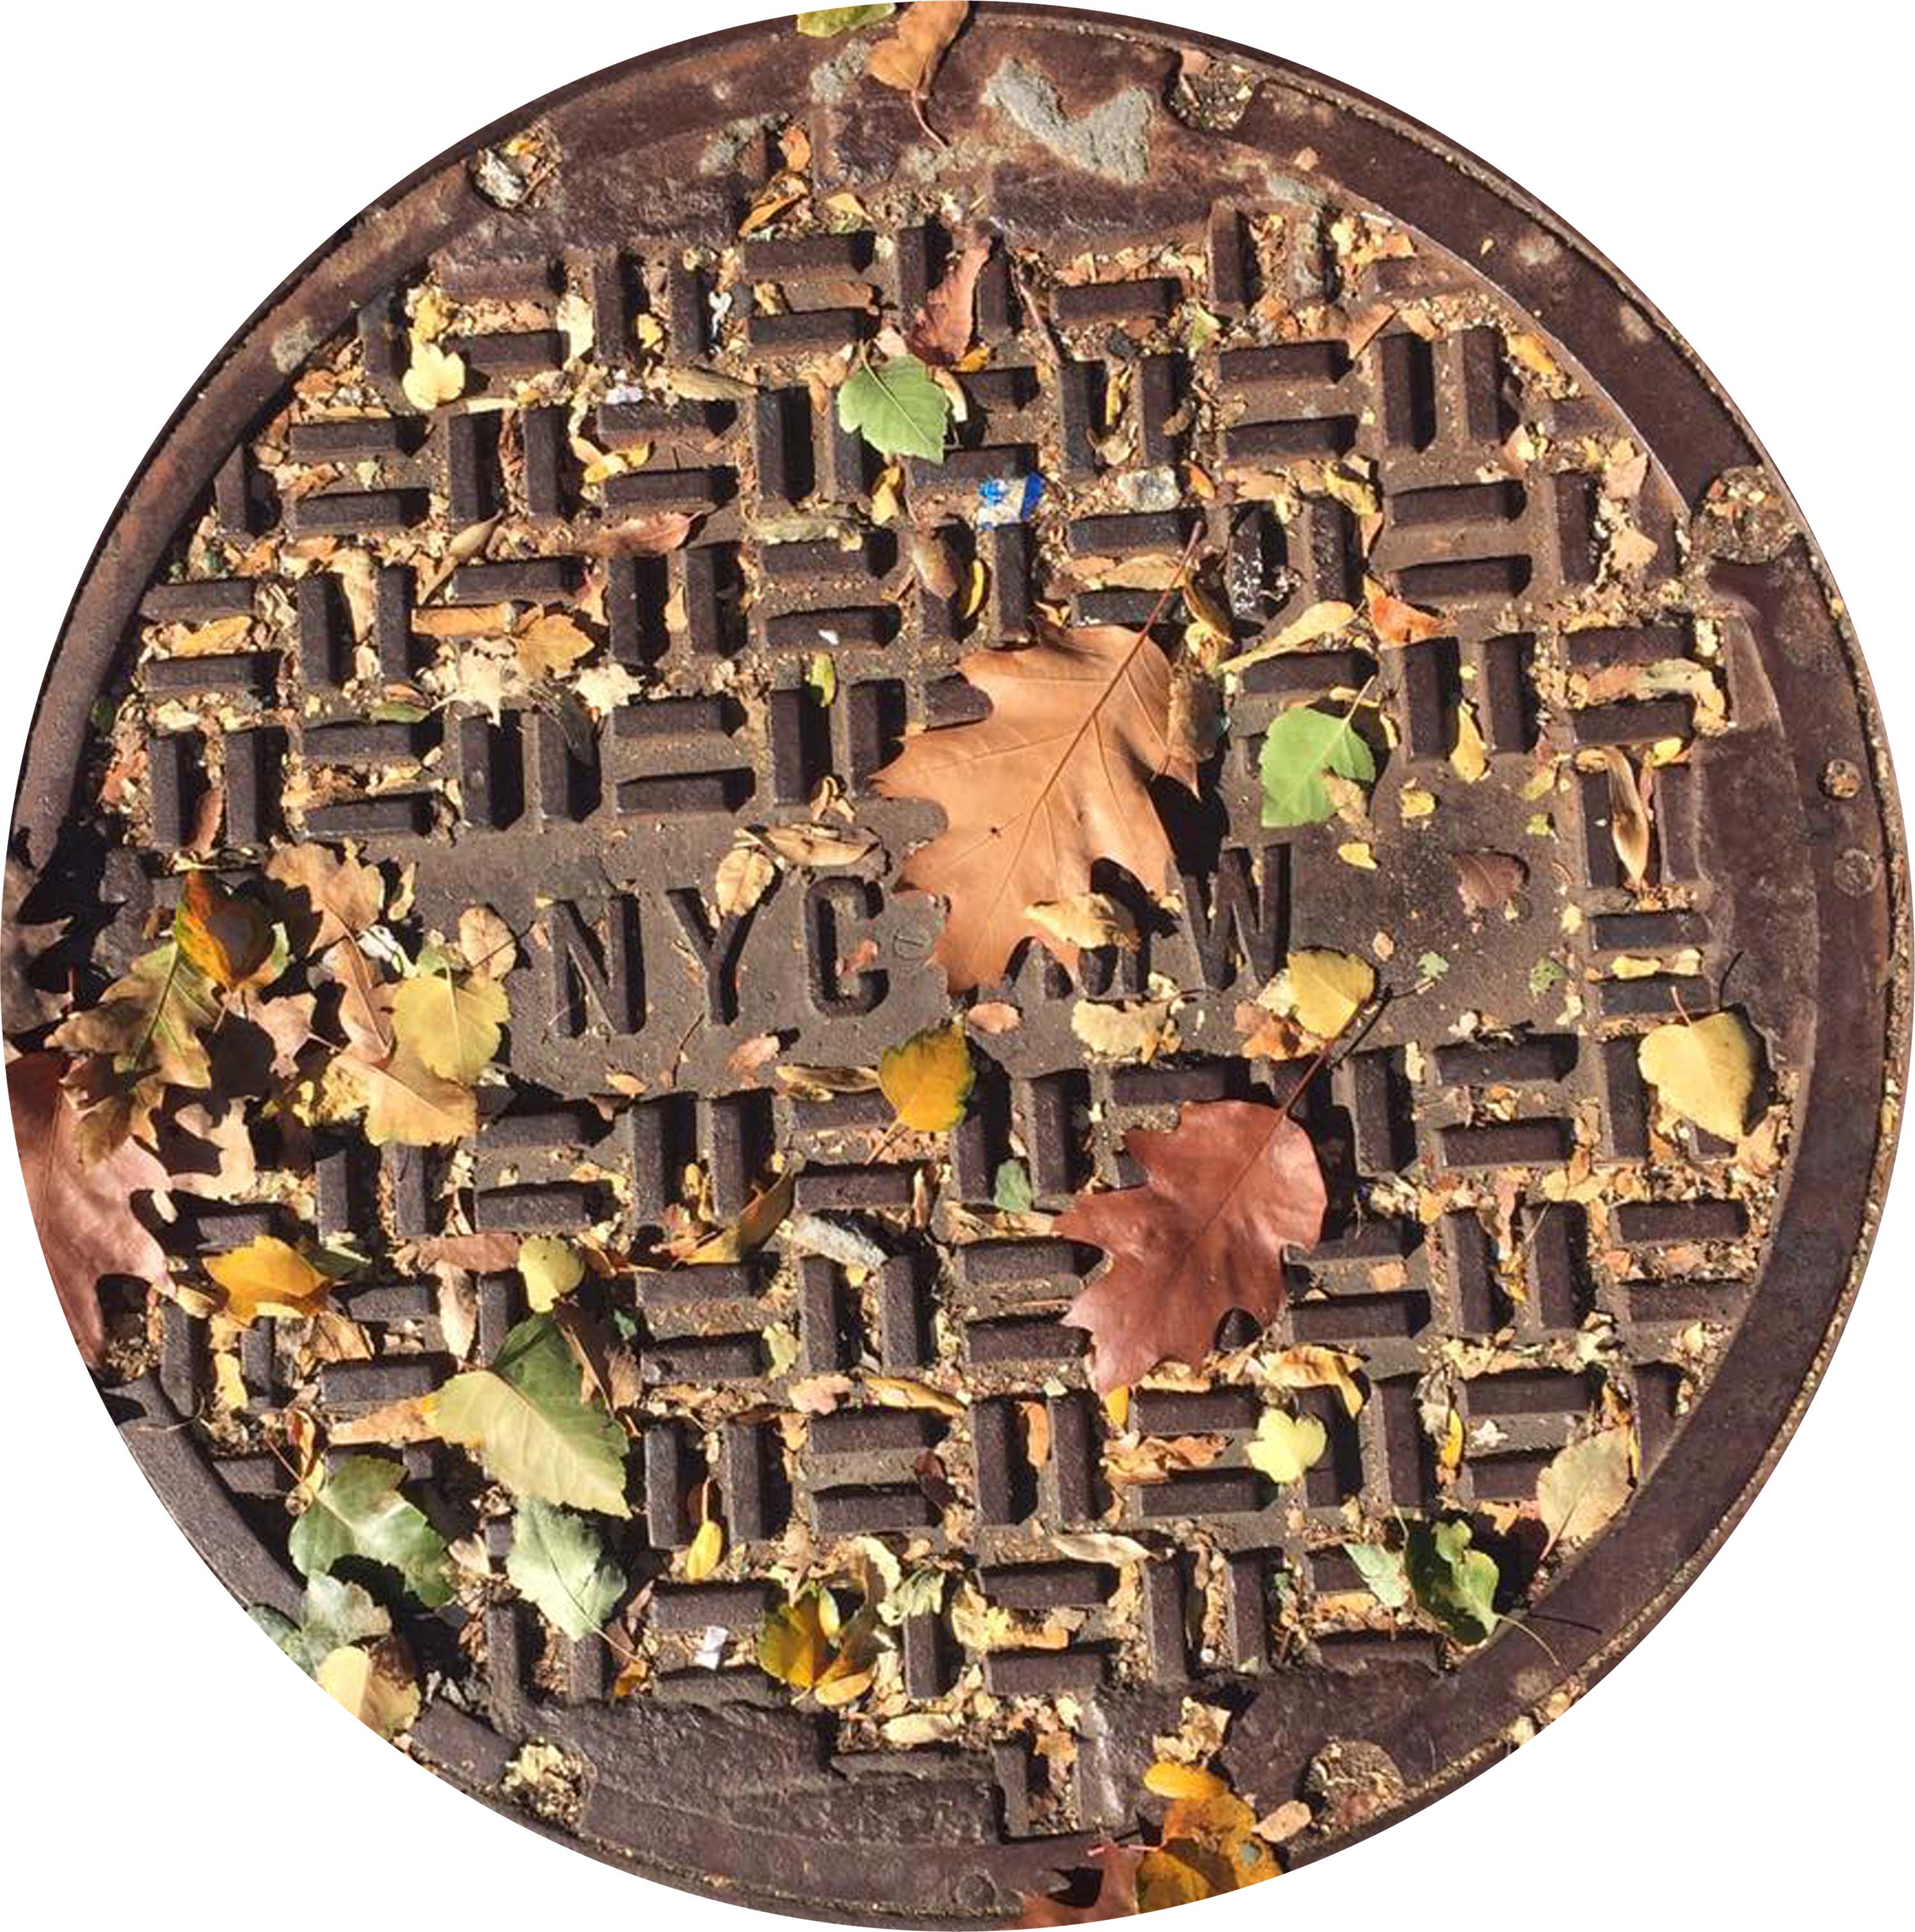 NYC SERIES - Sewer Cover Doormat, Trivet, Coaster - Fall - New York, NY